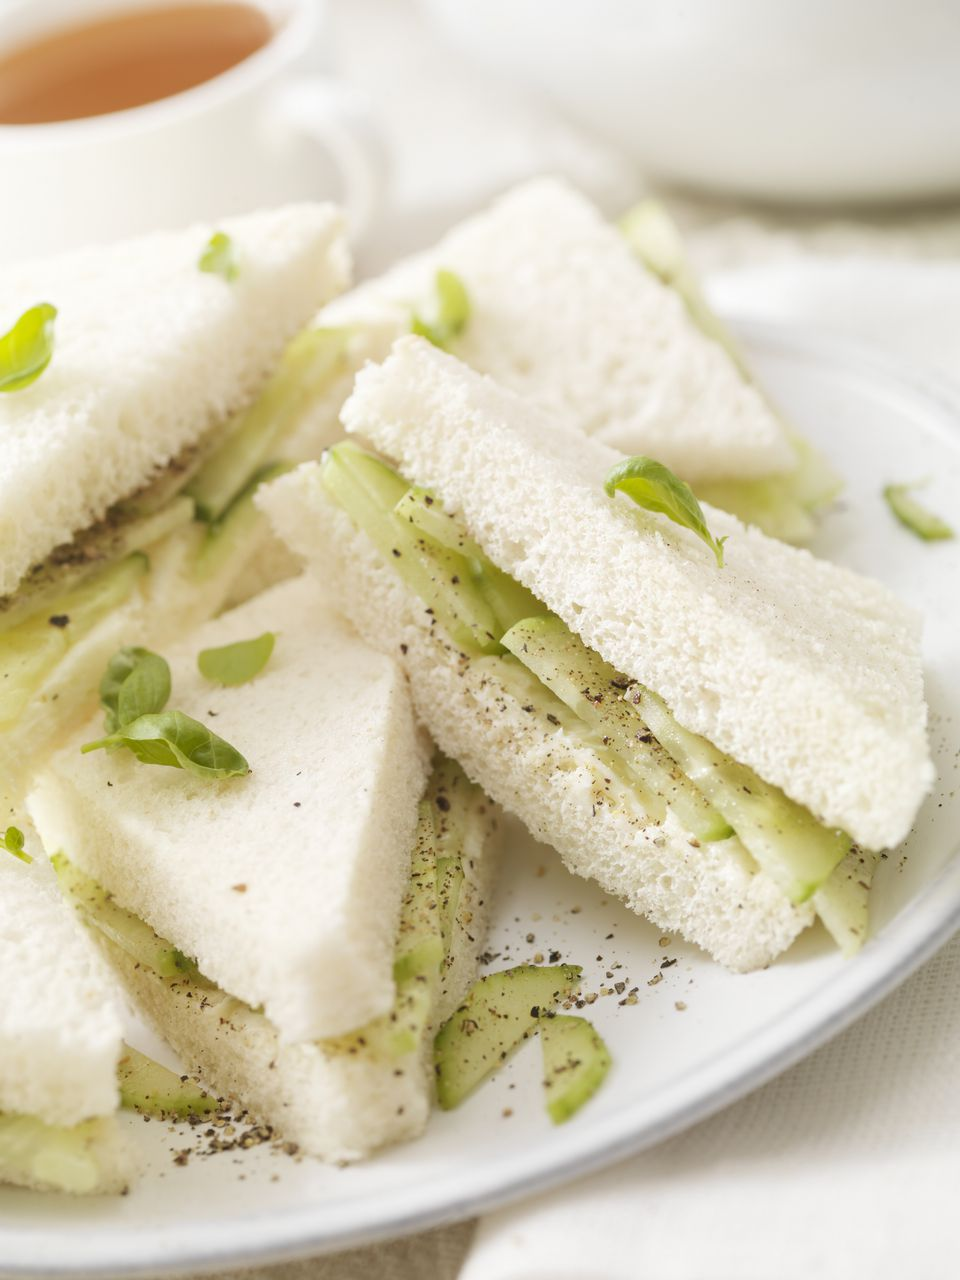 English Cucumber Sandwiches Crustless English Cucumber Sandwiches with Butter, Salt and Pepper and Fresh Herbs